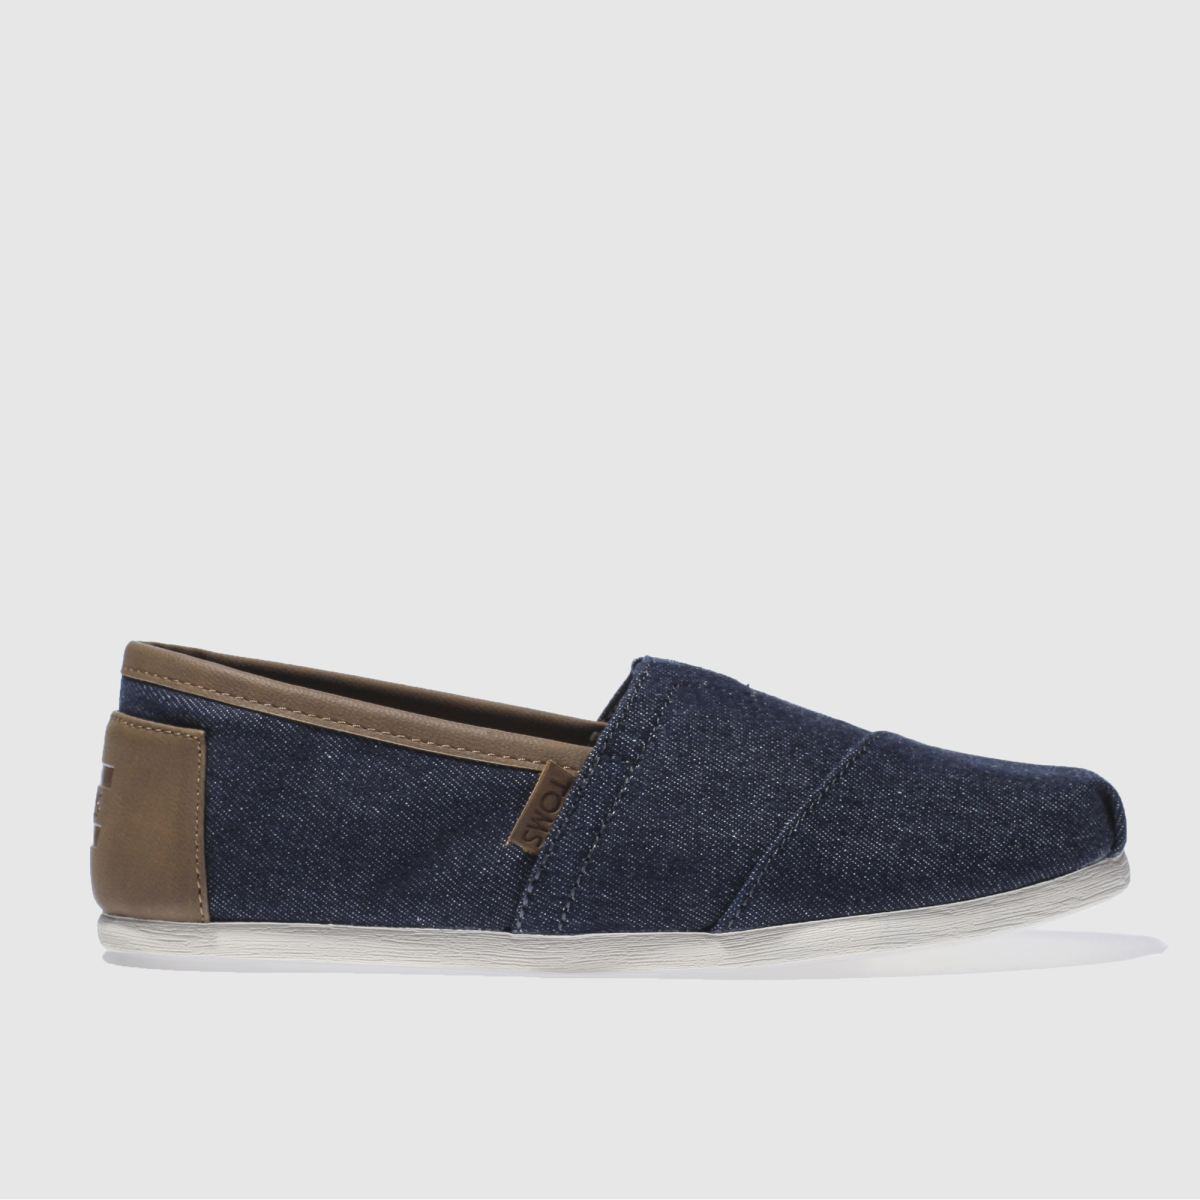 toms navy & brown seasonal classic shoes